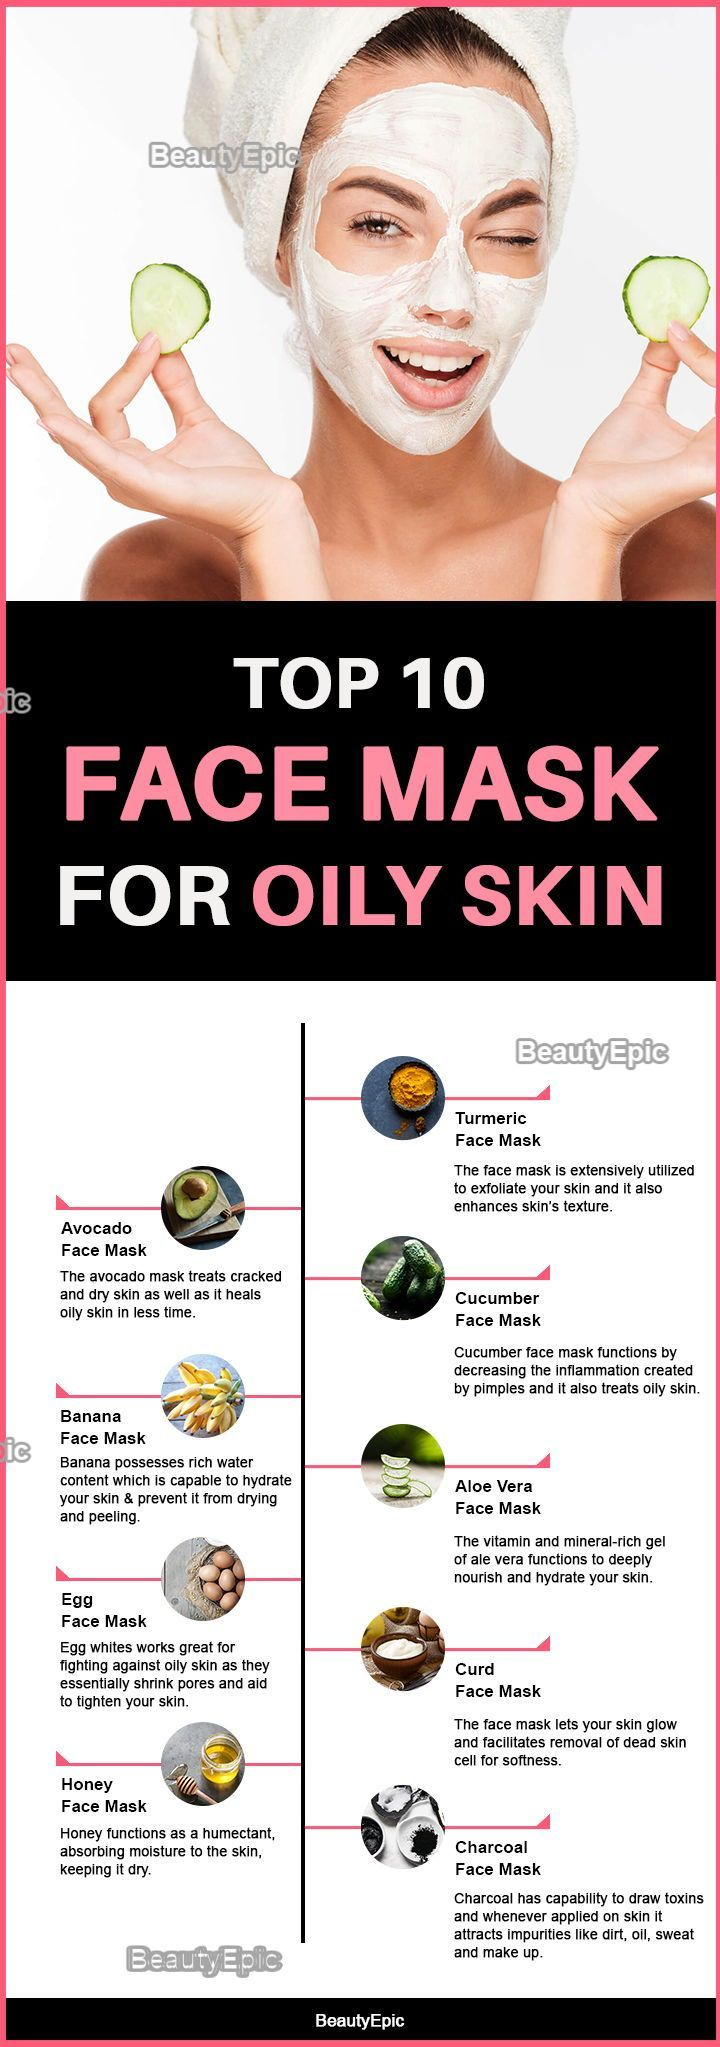 Photo of Face Mask for Oily Skin: Benefits + Top 10 Face Mask Recipes